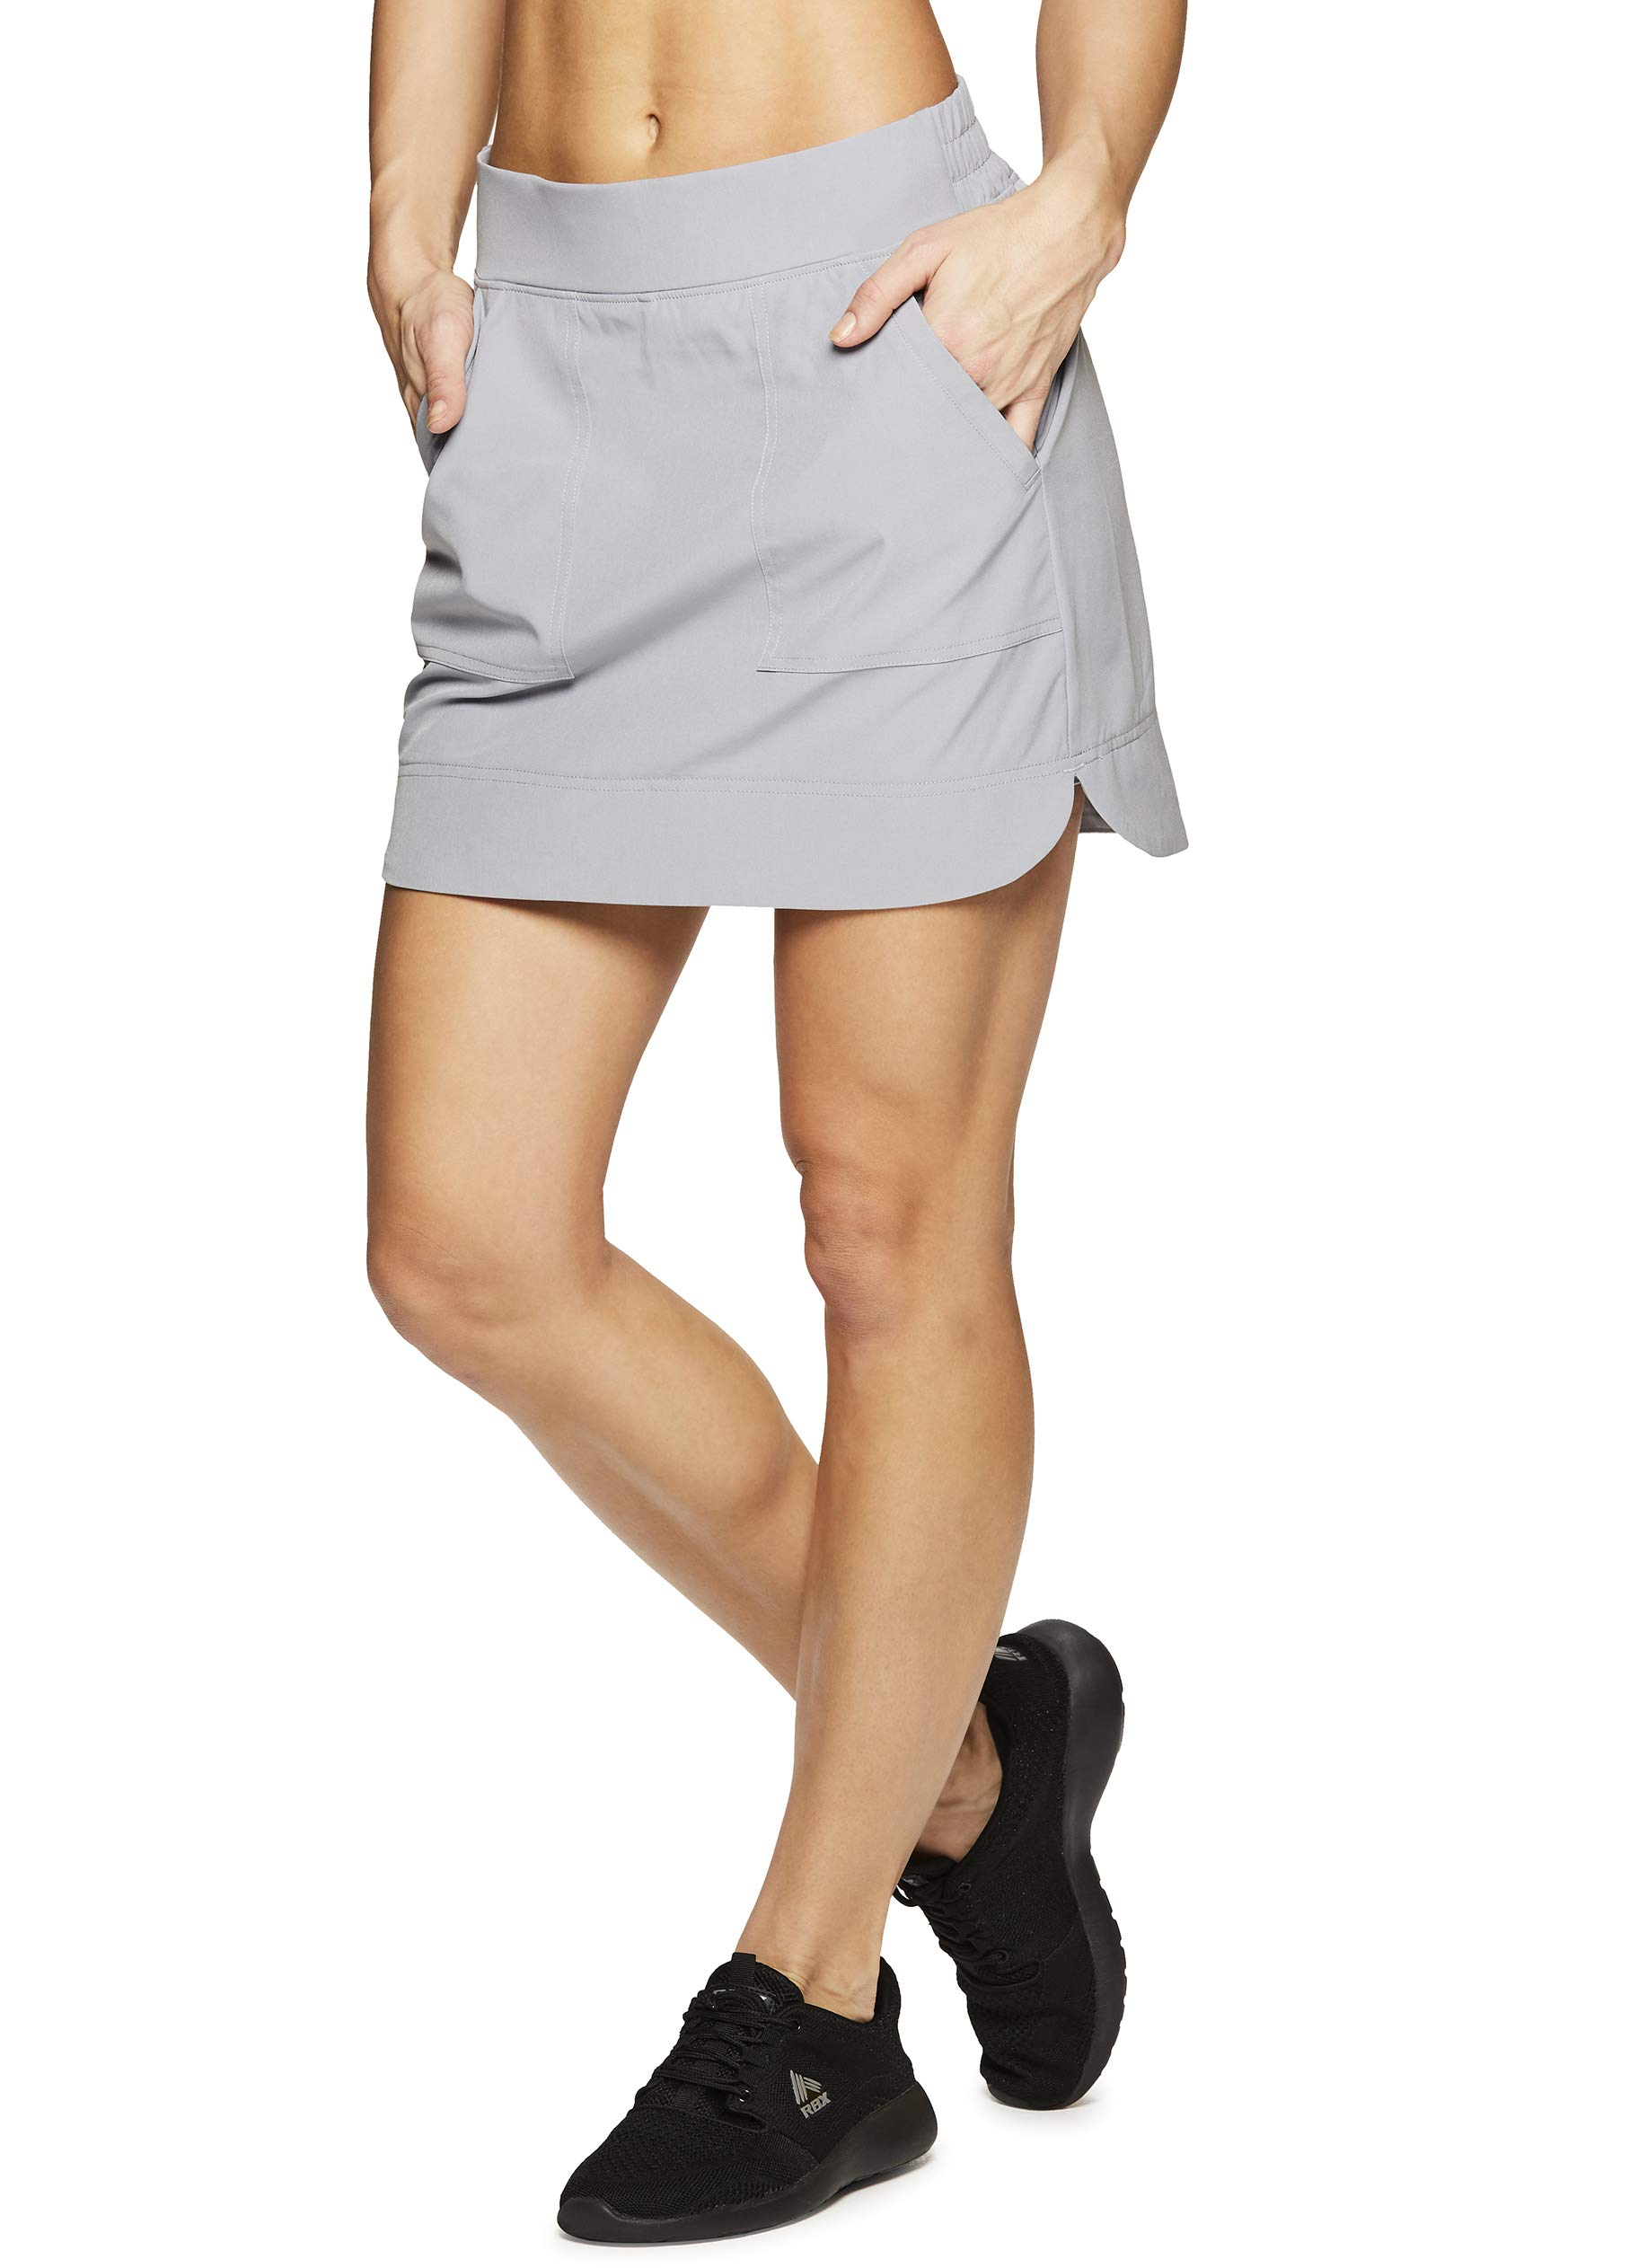 RBX Active Women's Golf/Tennis Athletic Skort with Bike Shorts and Pockets Spring Grey XL by RBX